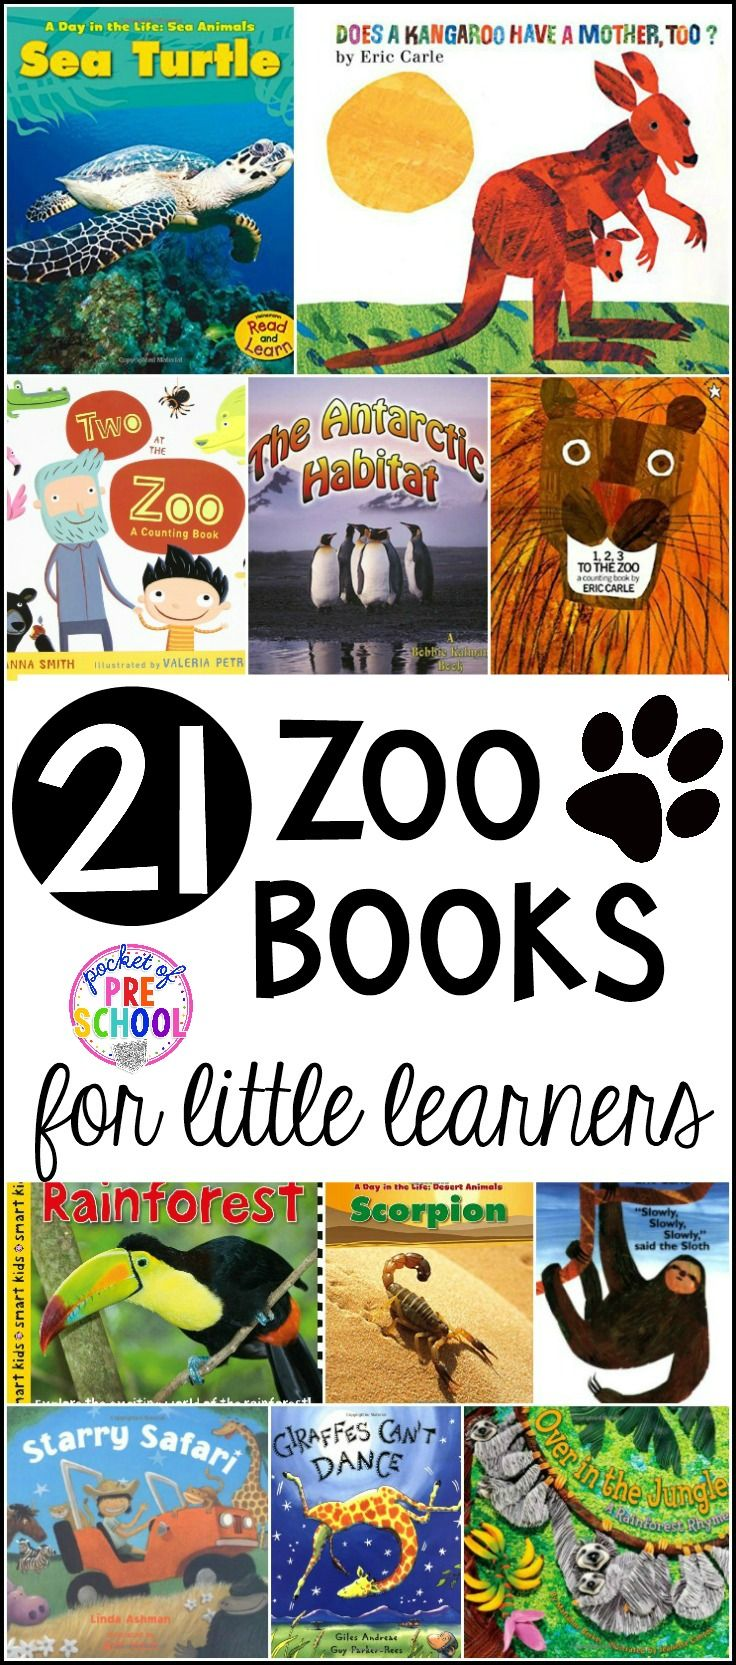 Our favorite Zoo Books for preschool, pre-k, and kindergarten kiddos. Animals books (non-fiction & fiction), animal counting books, and habitat books to squeeze in some science too. #preschool #prek #zoobooks #littlelearners #zootheme